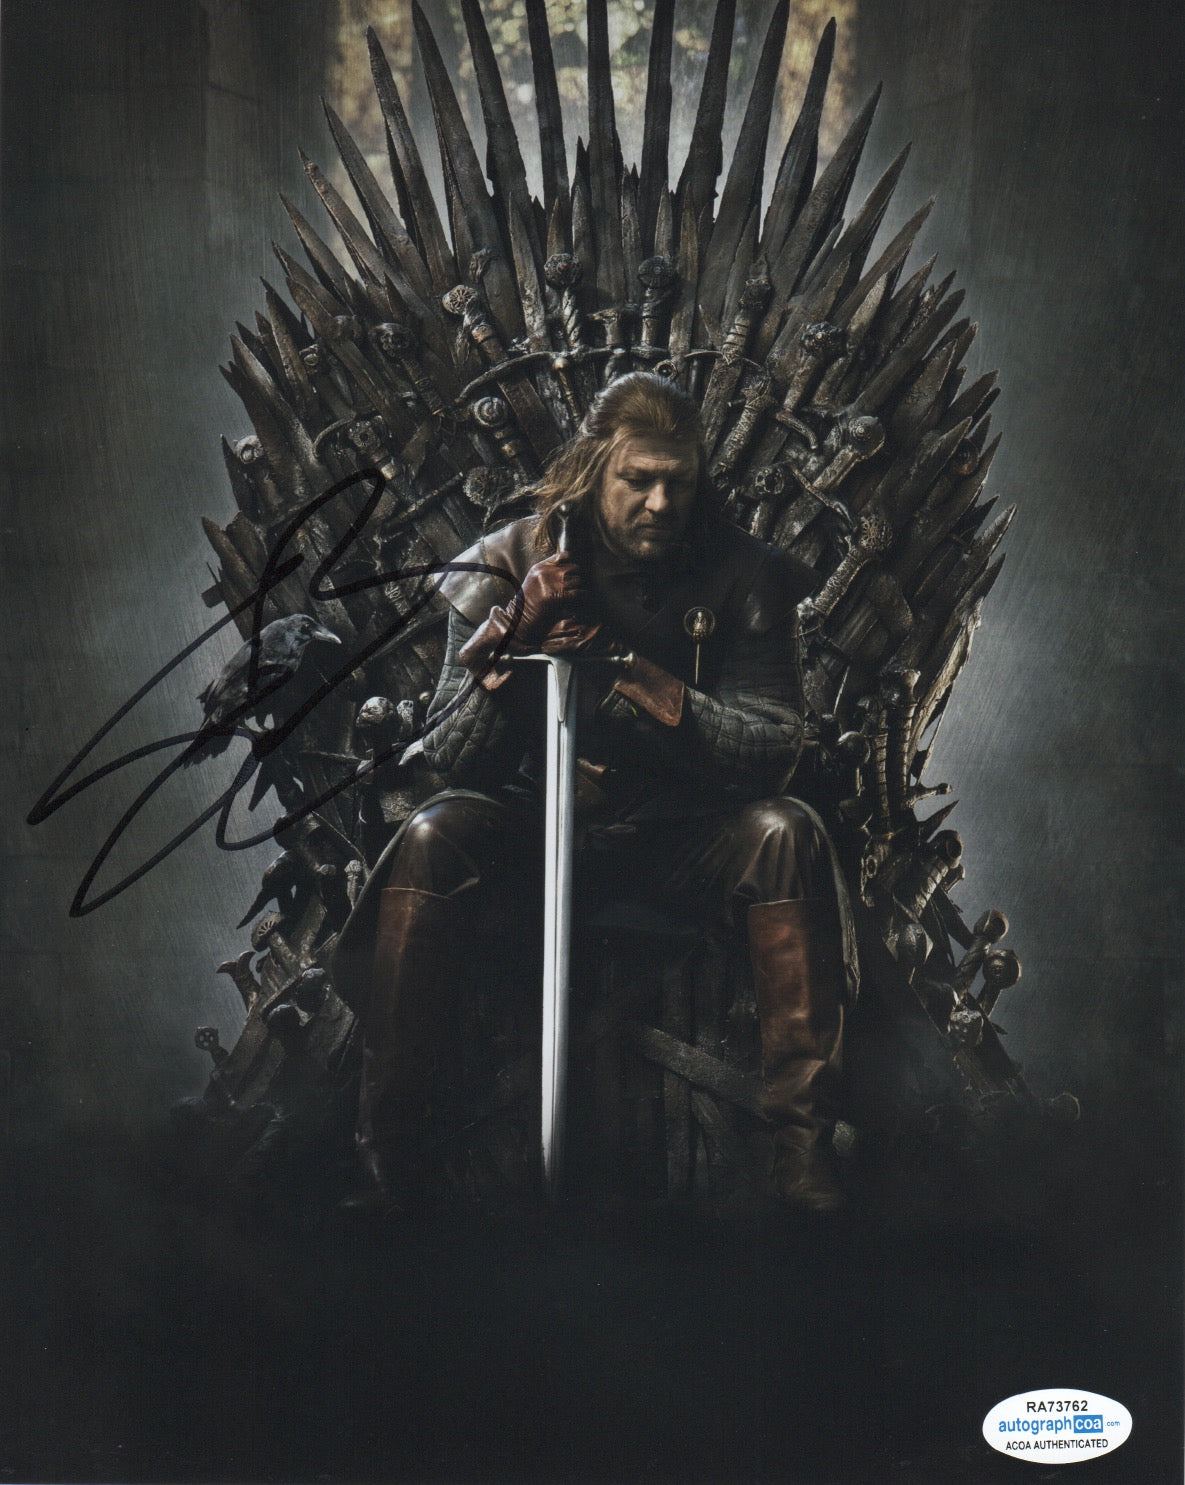 Sean Bean Game of Thrones Signed Autograph 8x10 Photo ACOA #3 - Outlaw Hobbies Authentic Autographs